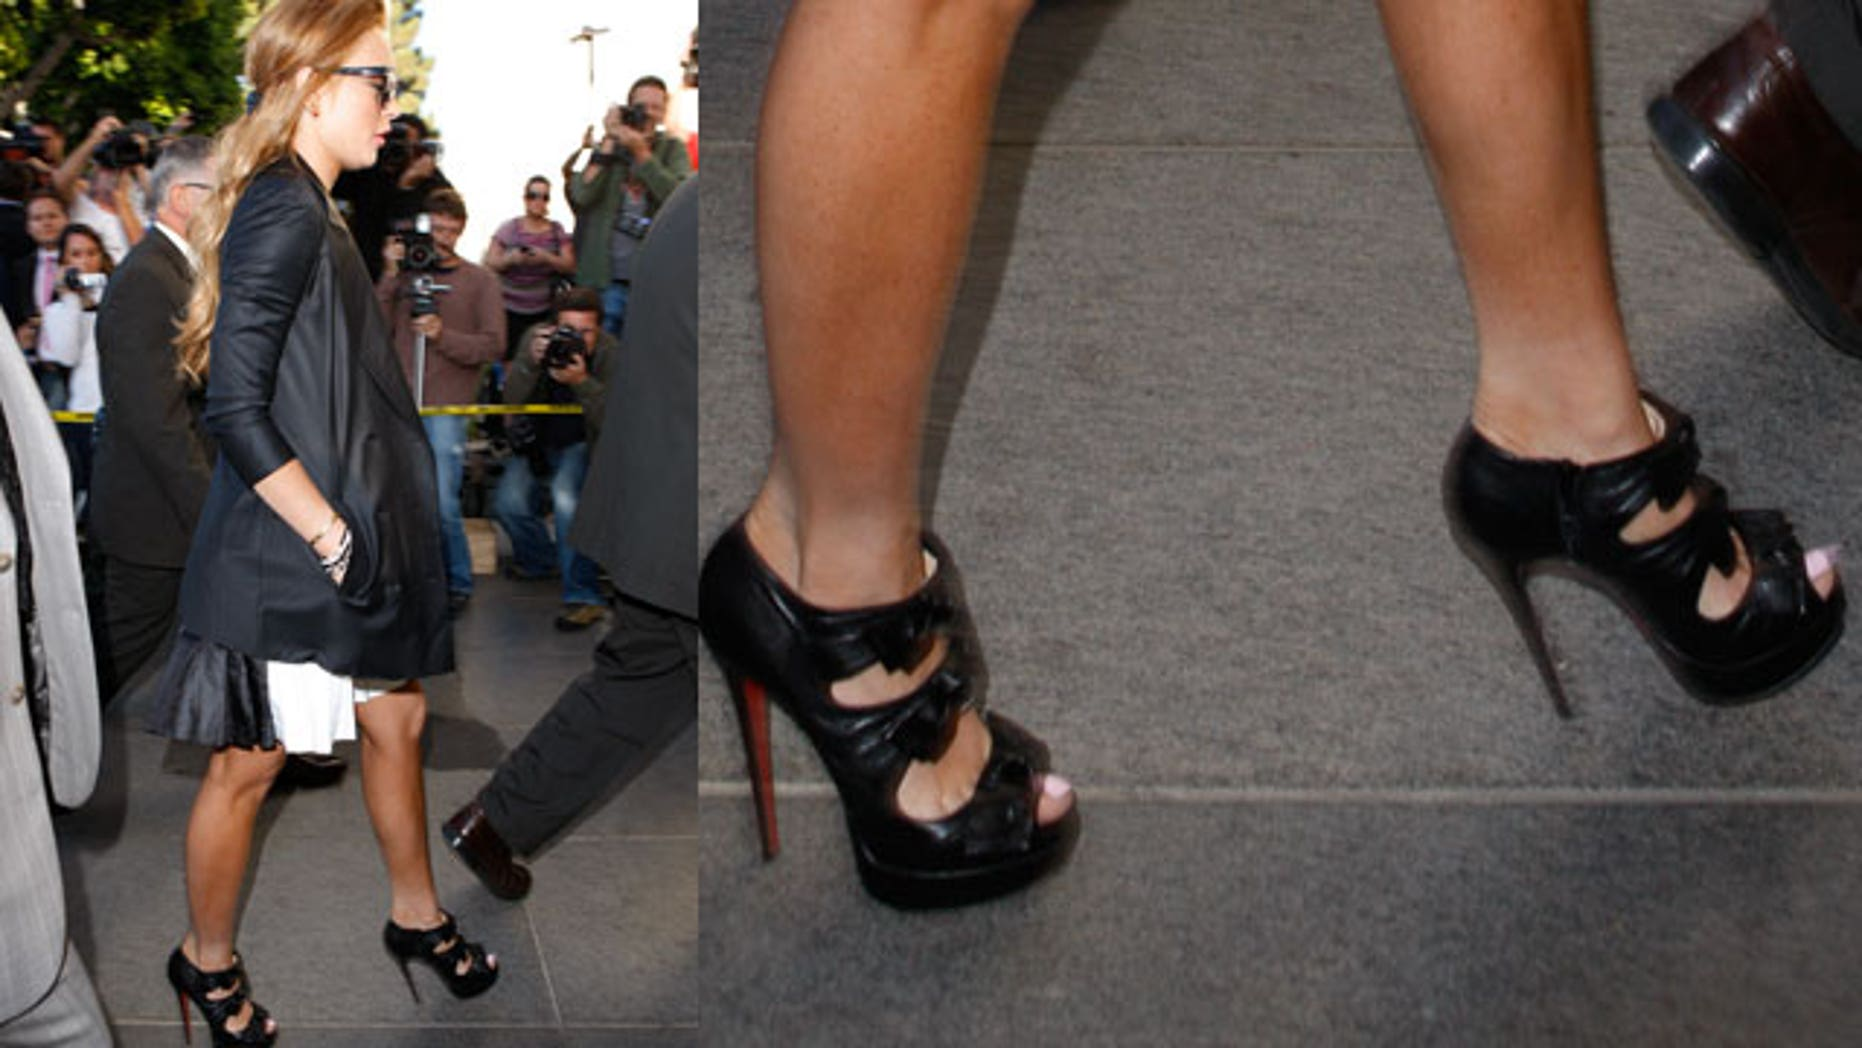 Lindsay Lohan's $1200 shoes could indicate she wasn't expecting to go to jail again.